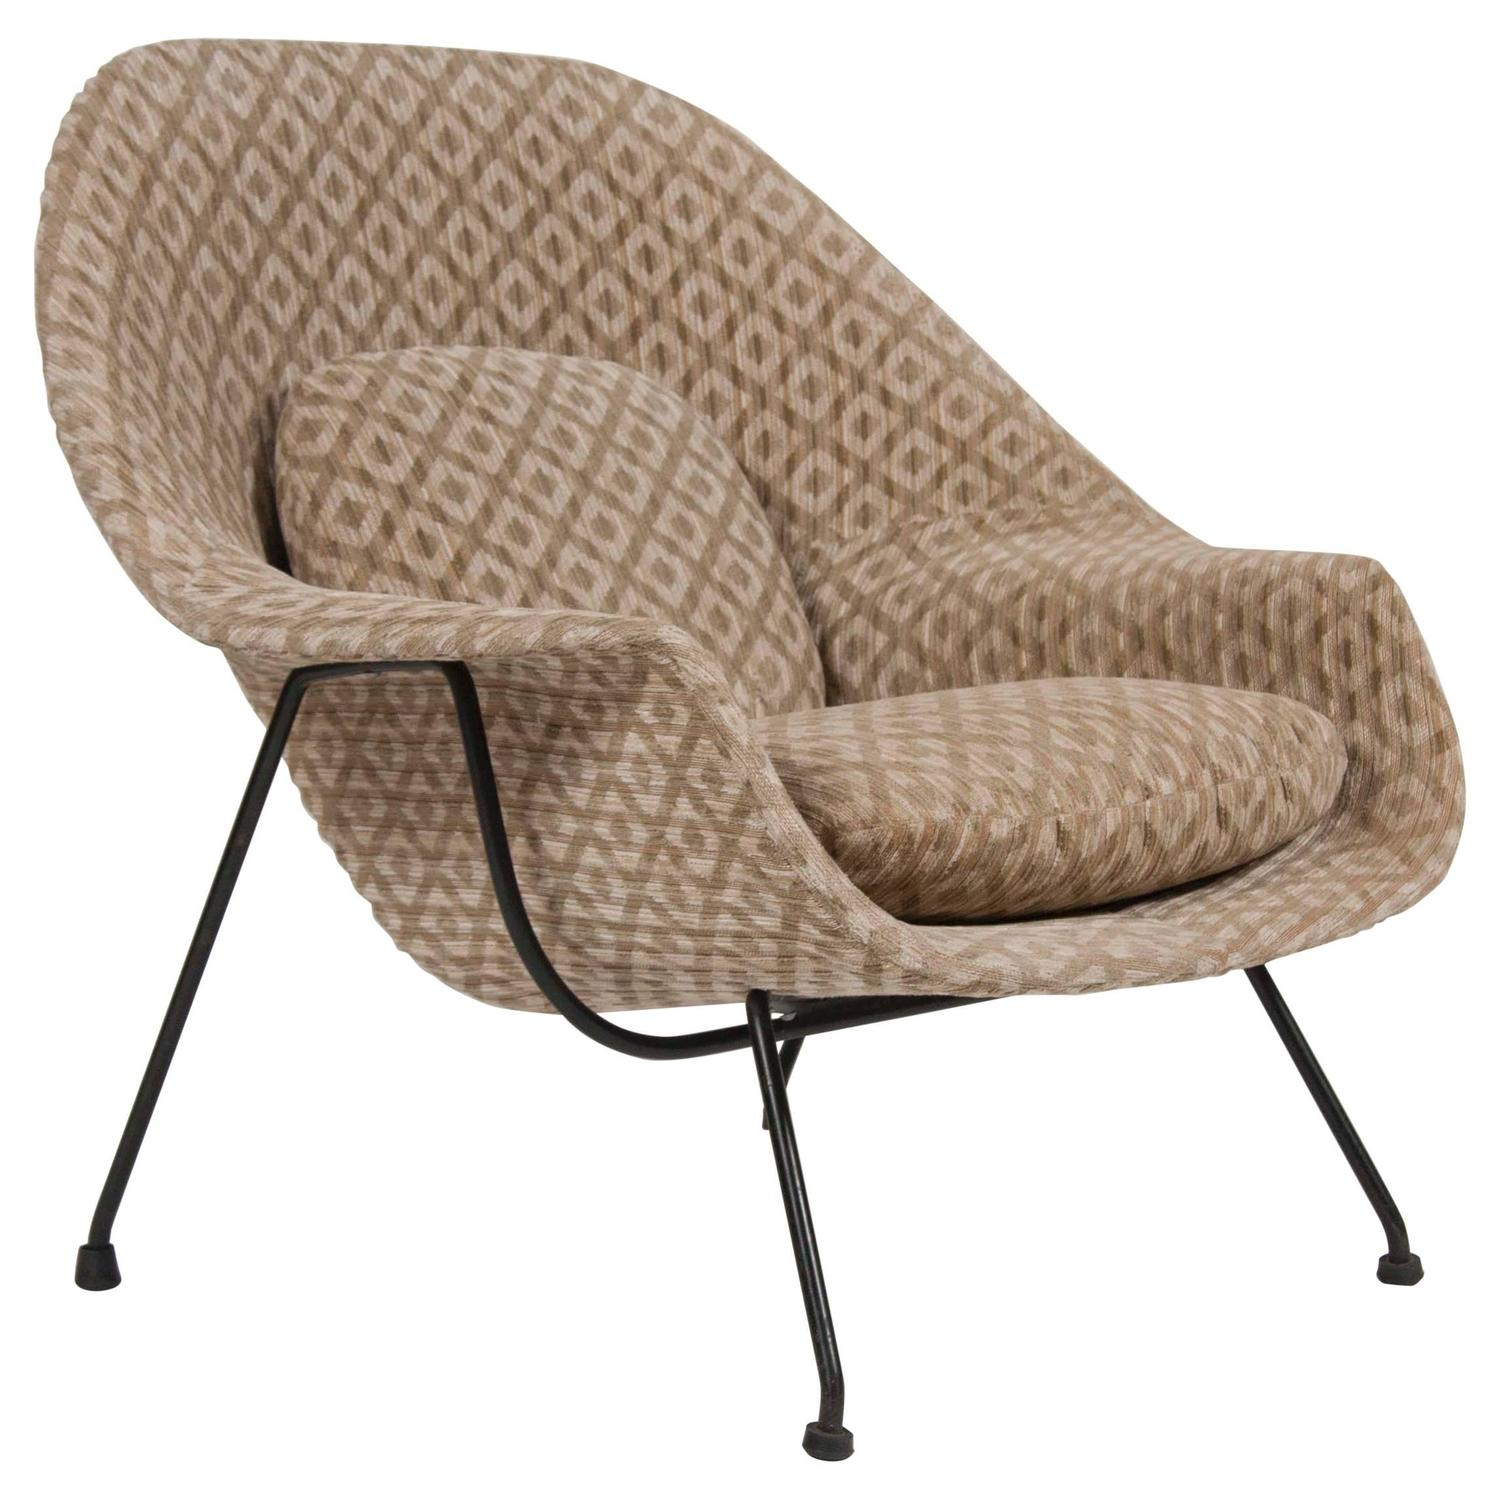 first generation eero saarinen womb chair for knoll at stdibs -